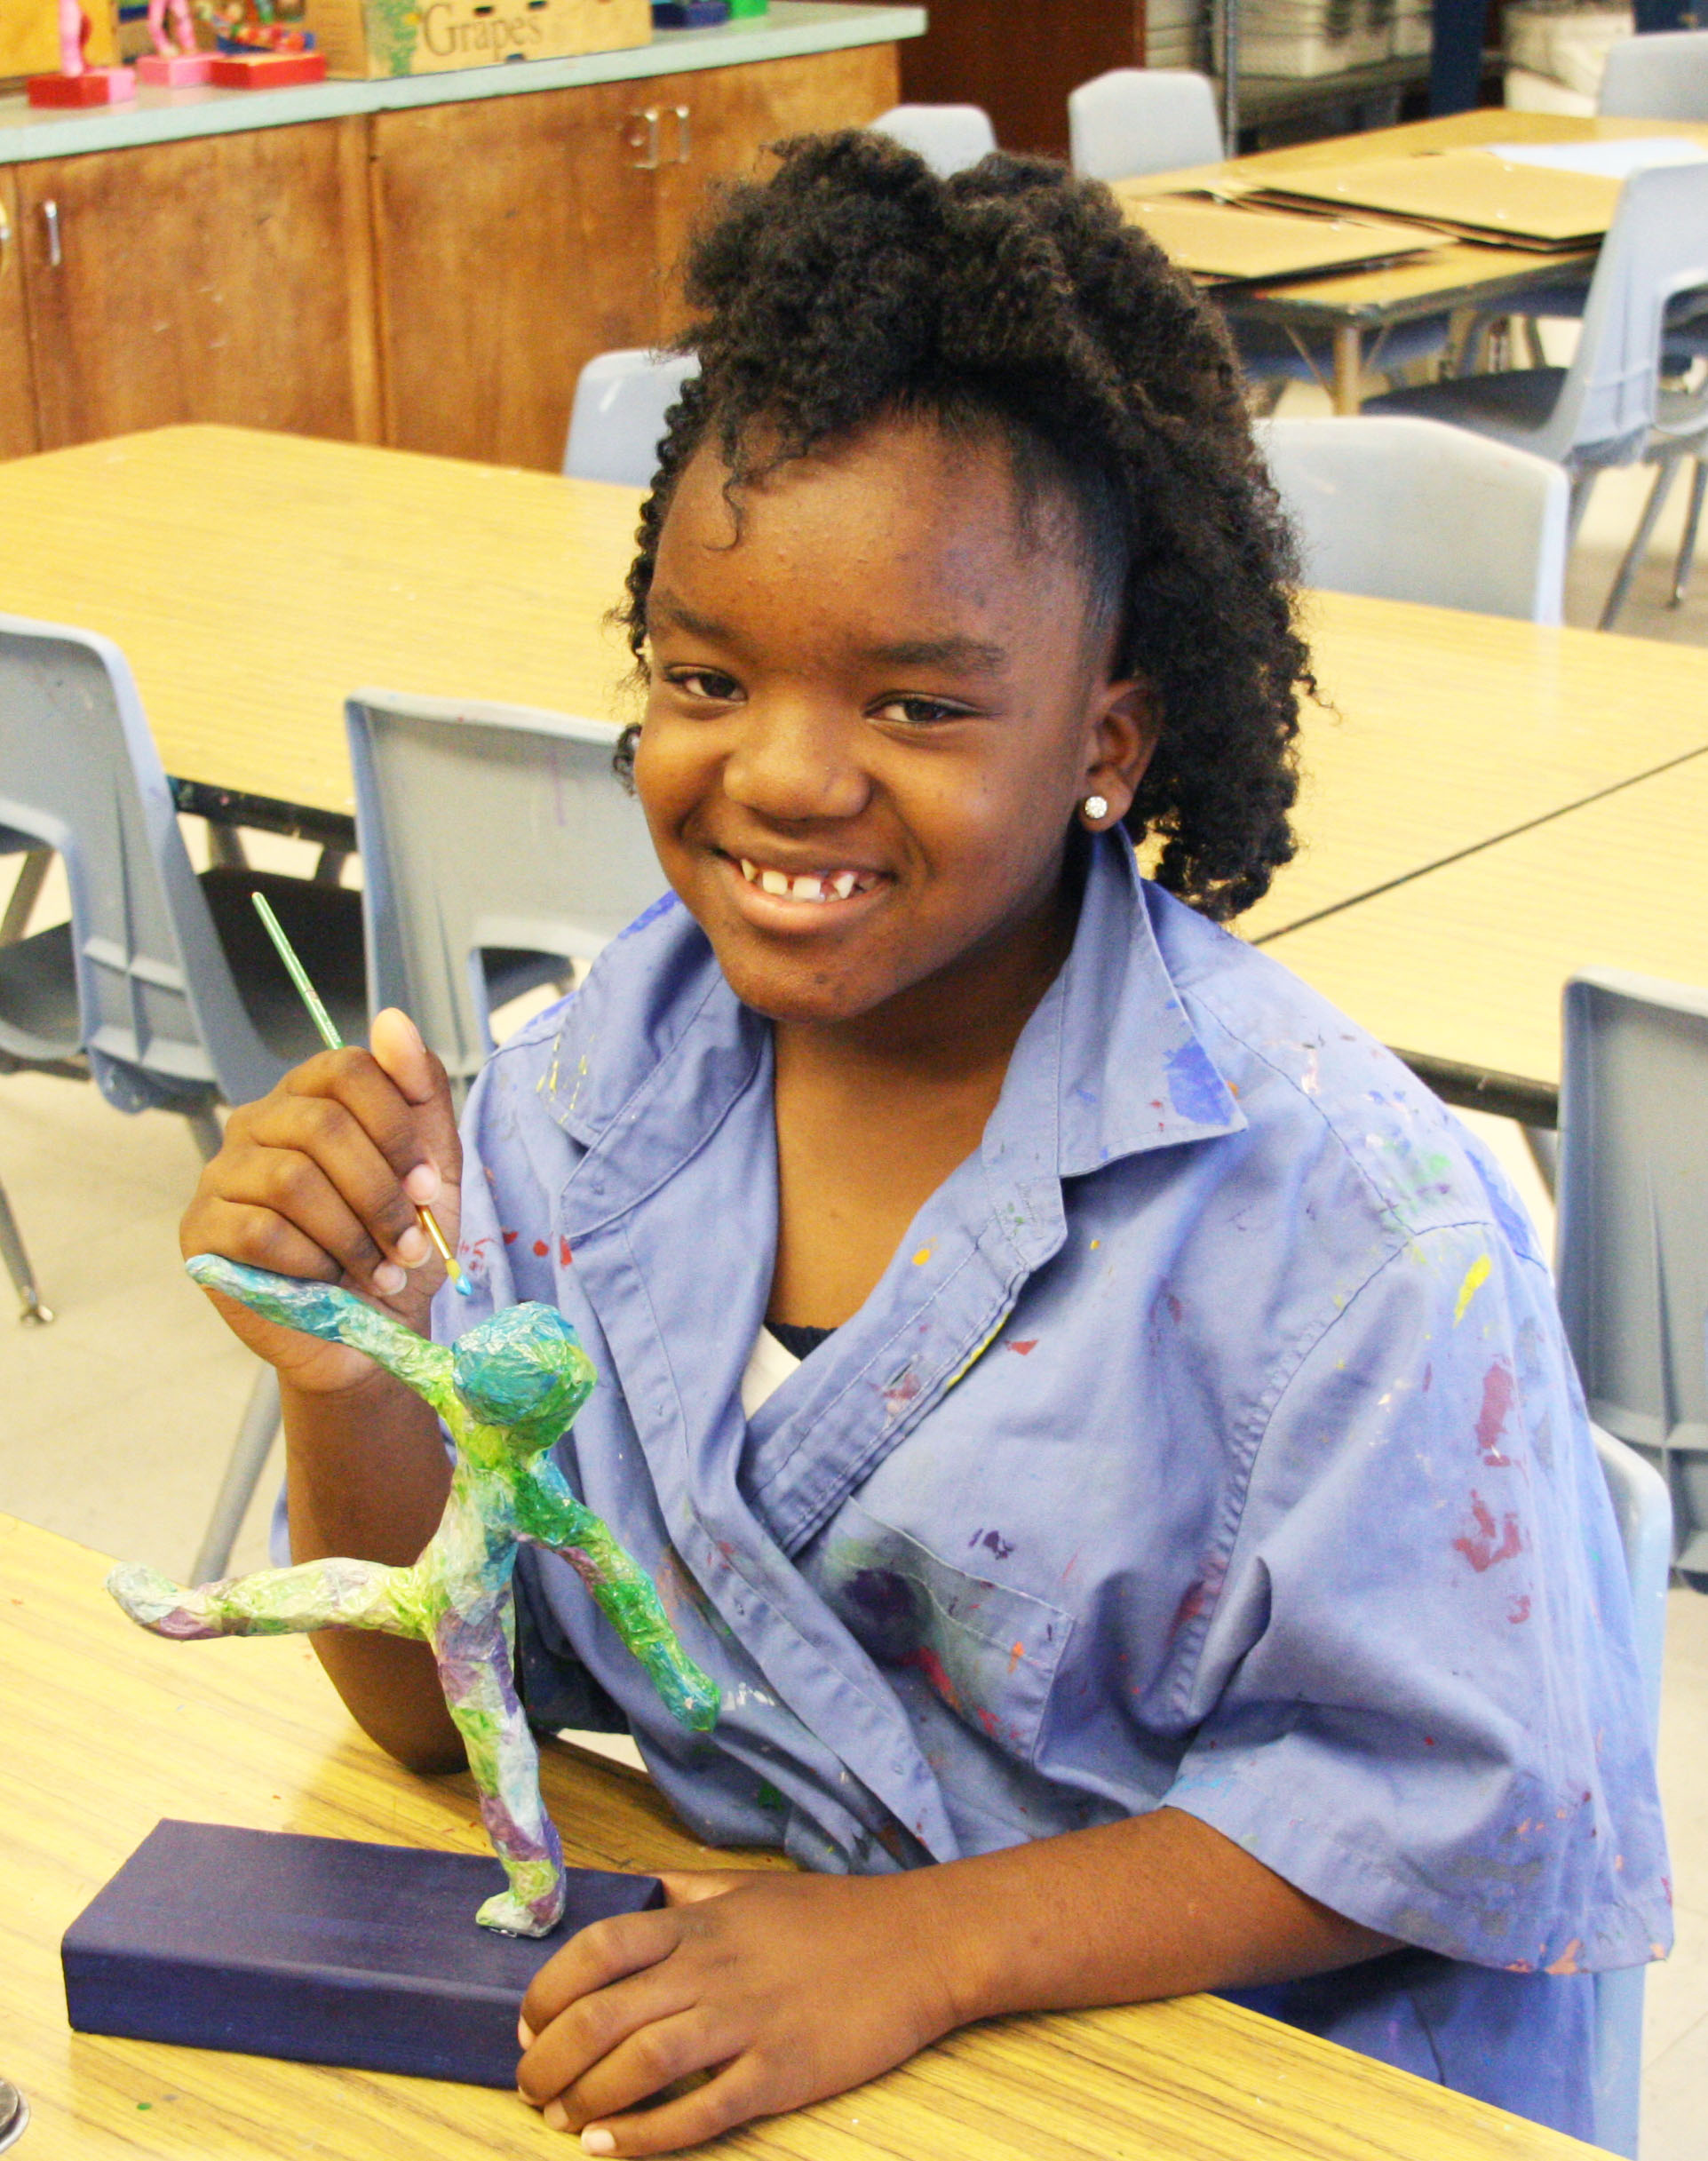 Carrillo Student working on sculpture of body